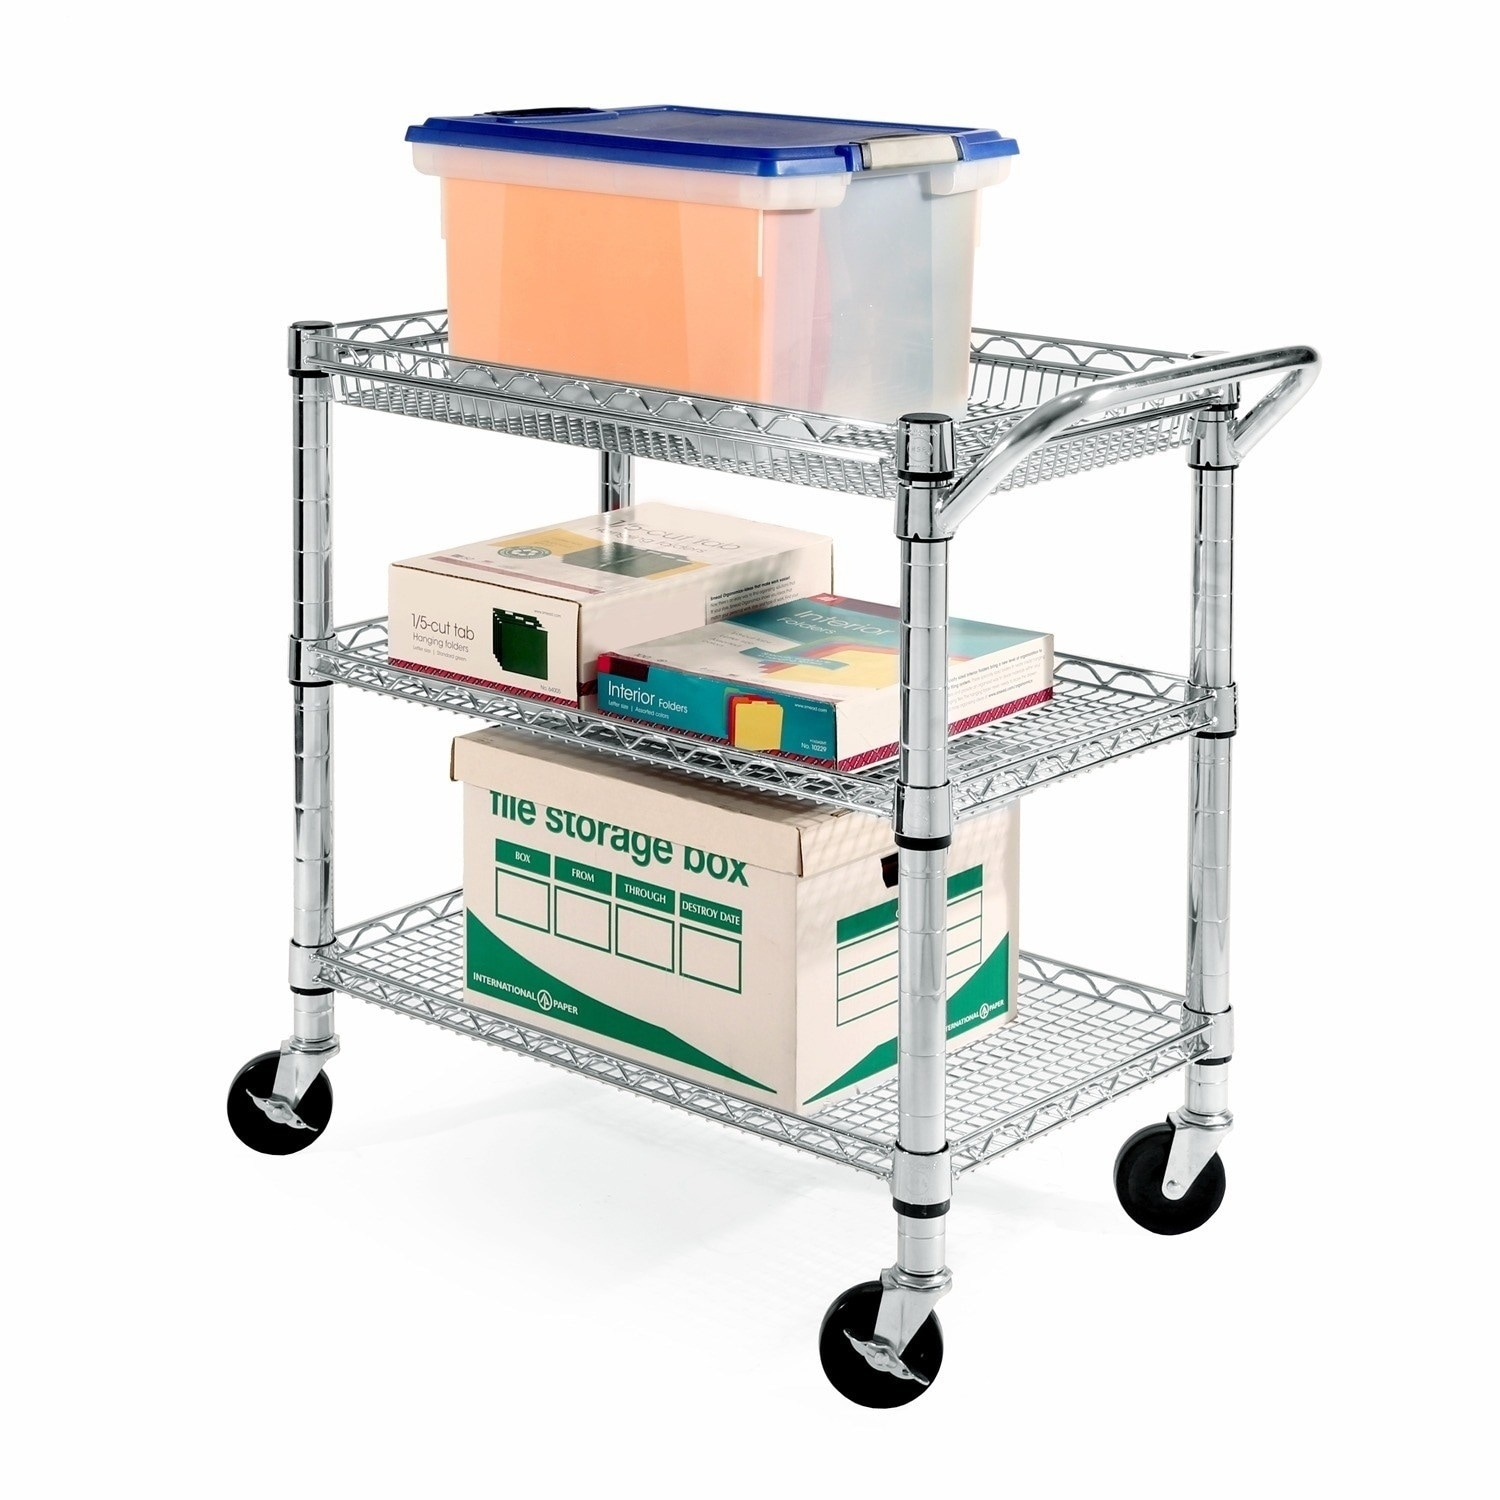 Merveilleux Heavy Duty 3 Shelf Utility Cart, Metal Commercial Kitchen Office Rolling  Storage